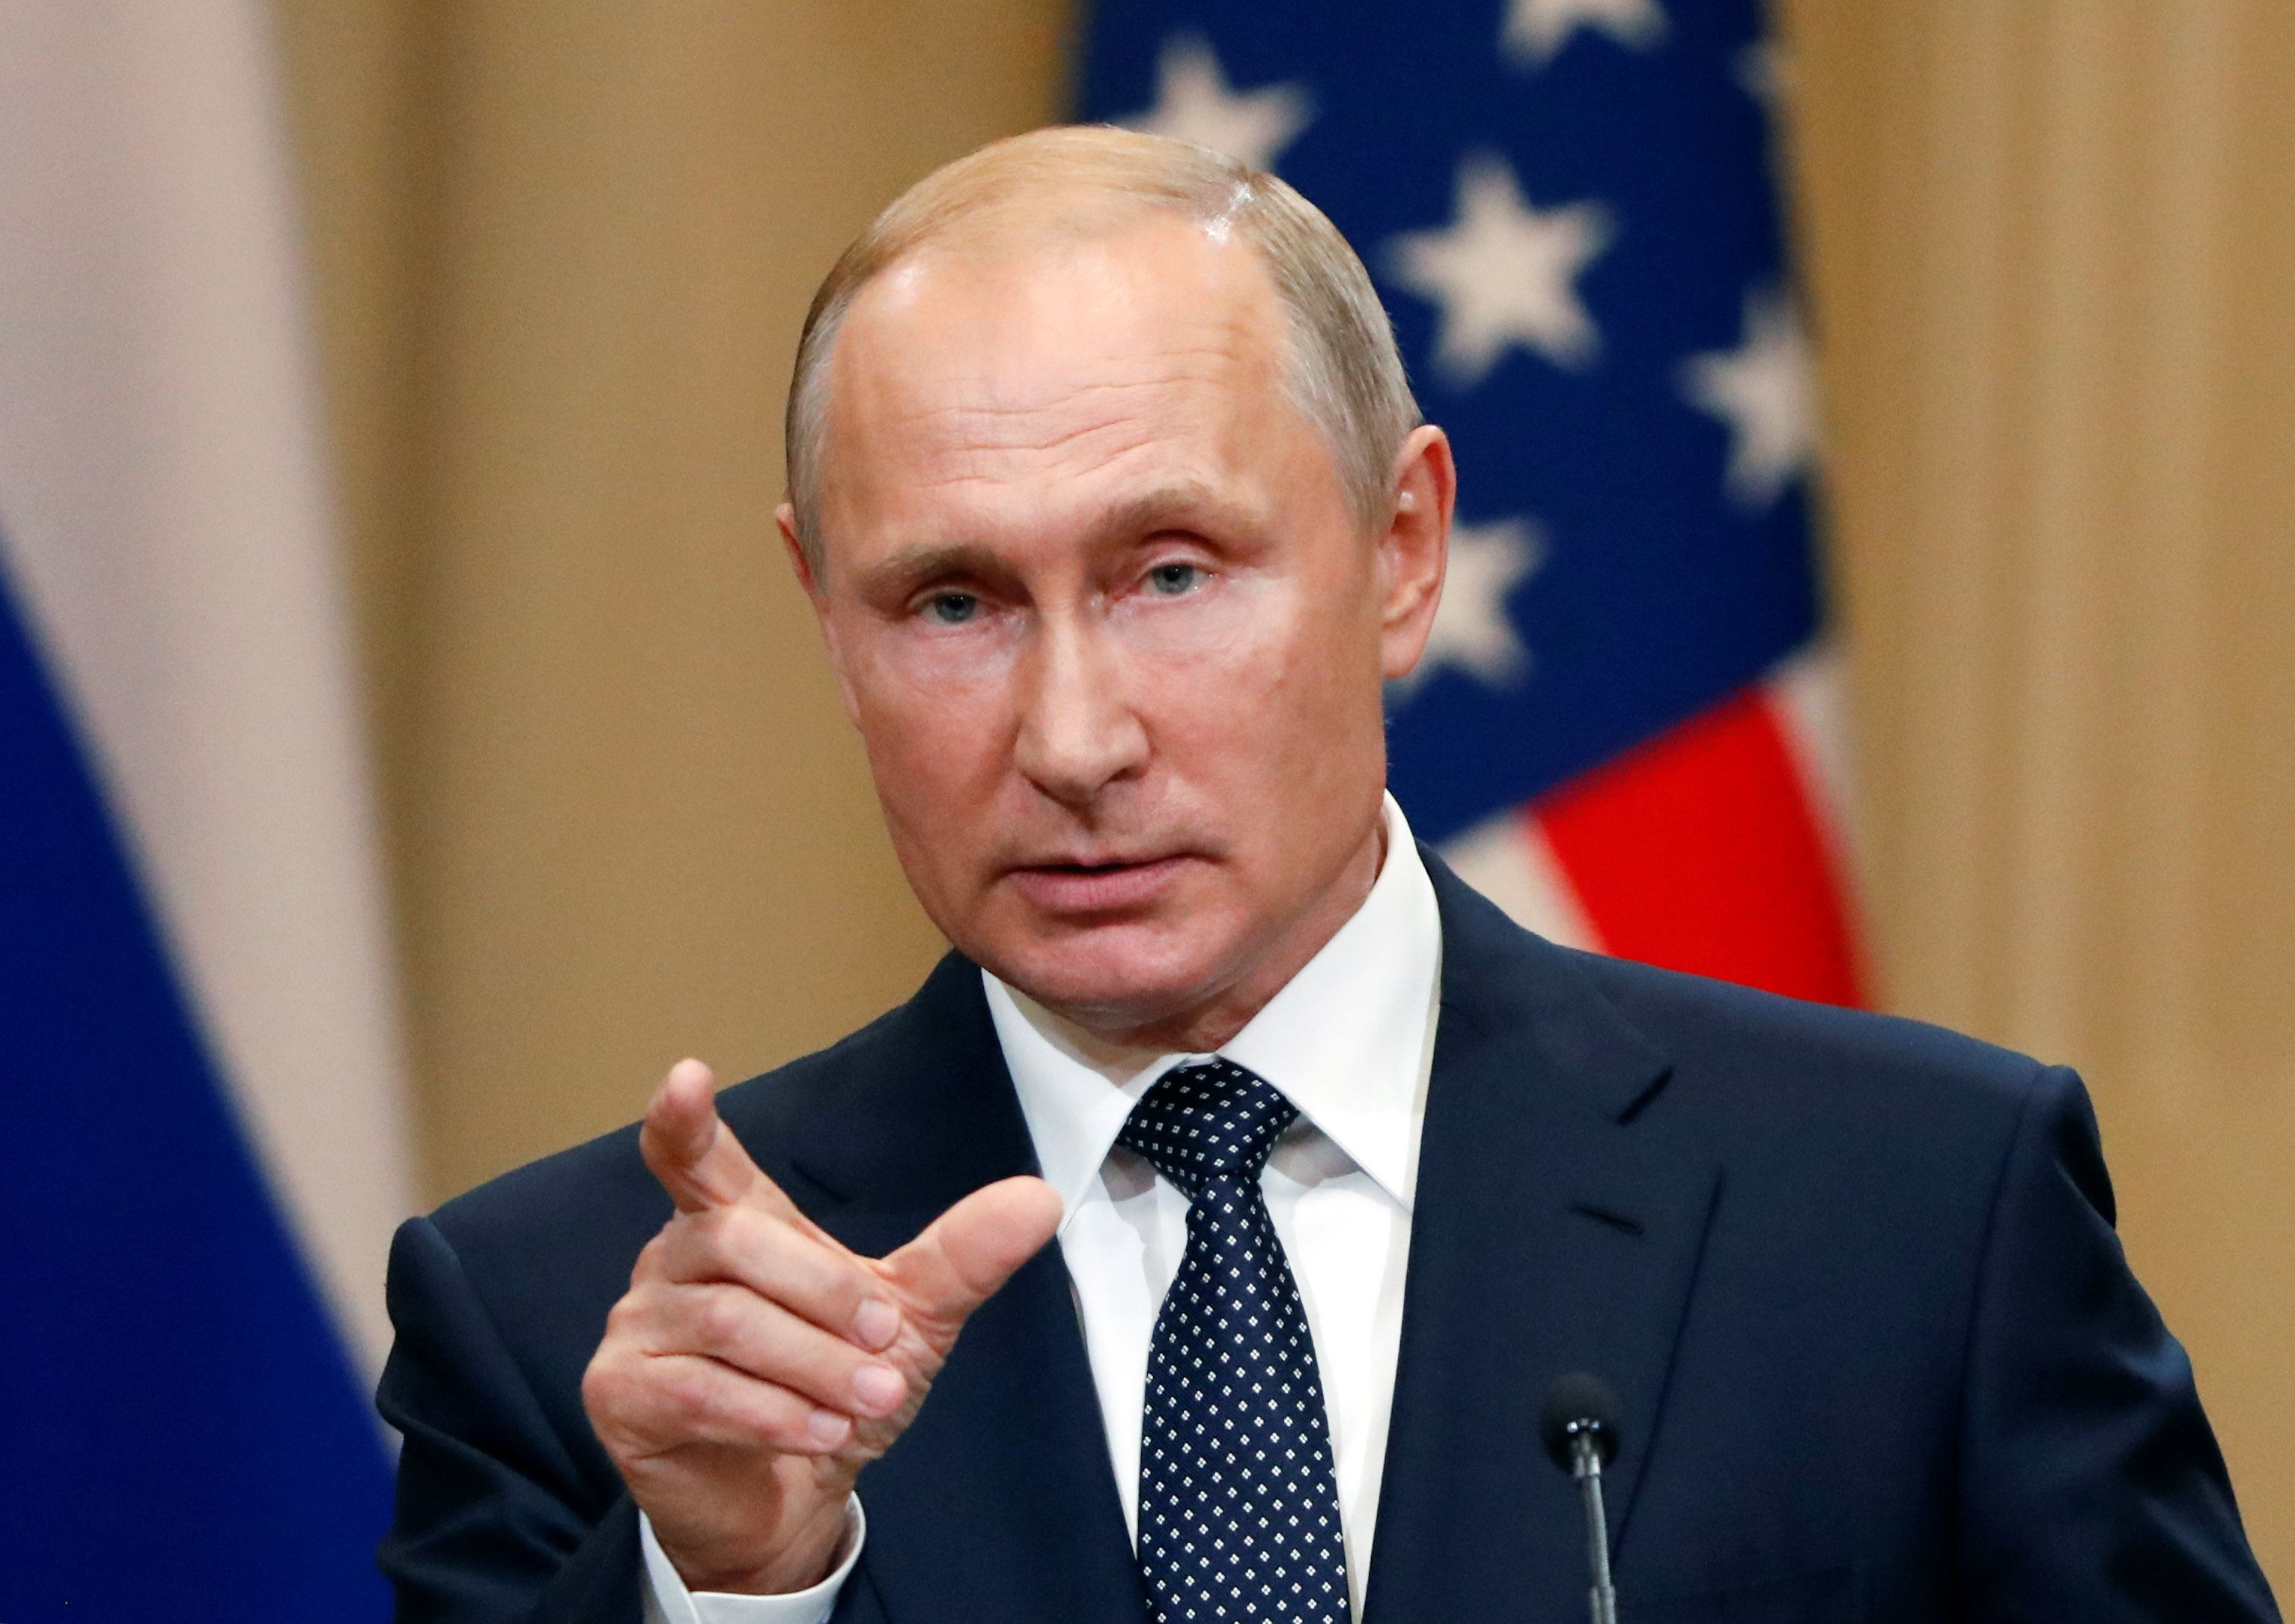 Russian President Vladimir Putin gestures during a joint news conference with U.S. President Donald Trump (not pictured) after their meeting in Helsinki, Finland July 16, 2018. REUTERS/Grigory Dukor